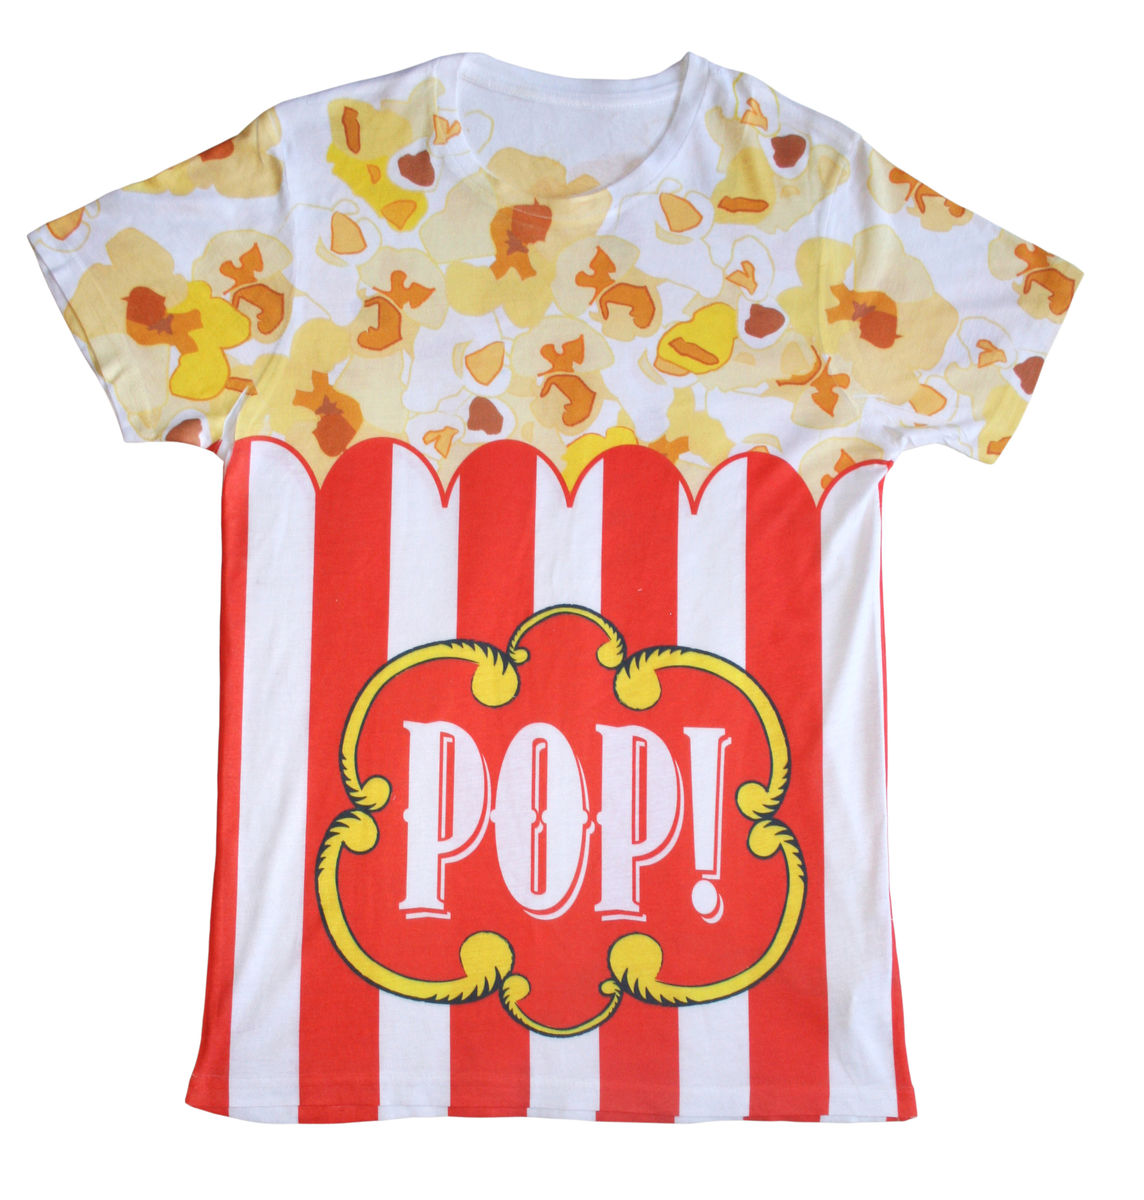 Pop! T-Shirt - product images  of